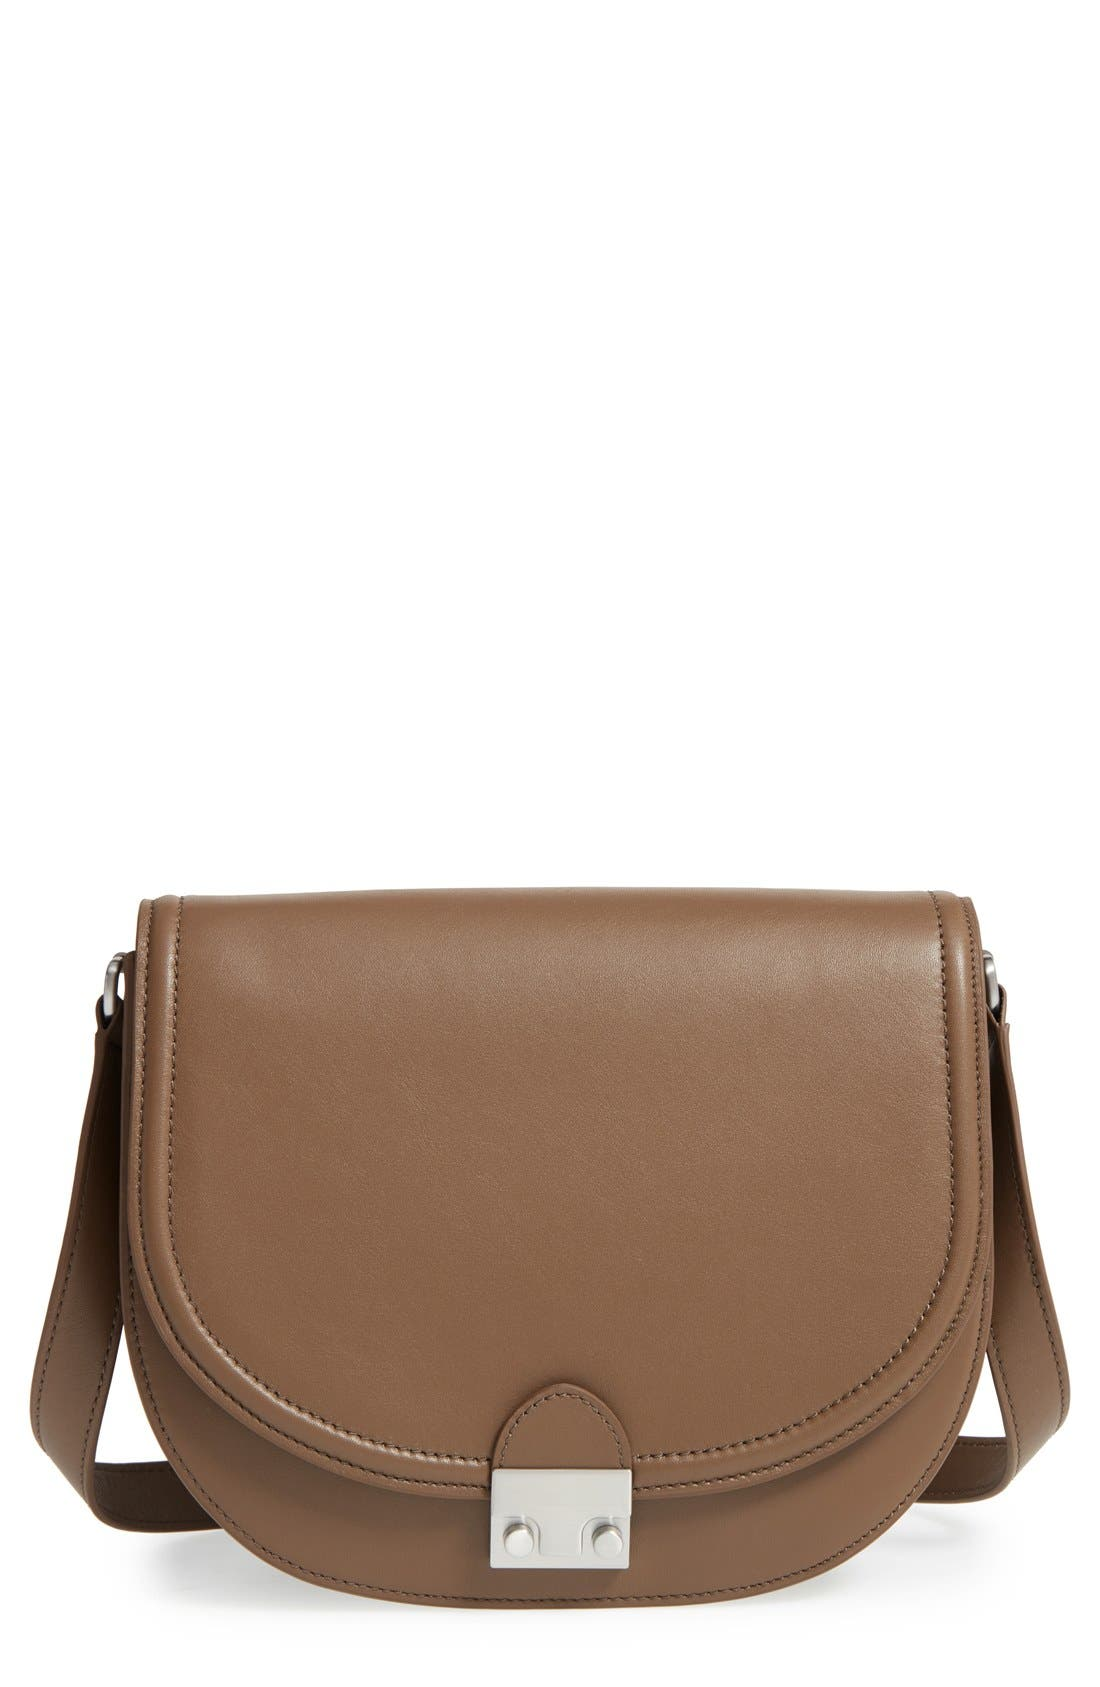 Main Image - Loeffler Randall 'Large' Leather Saddle Bag